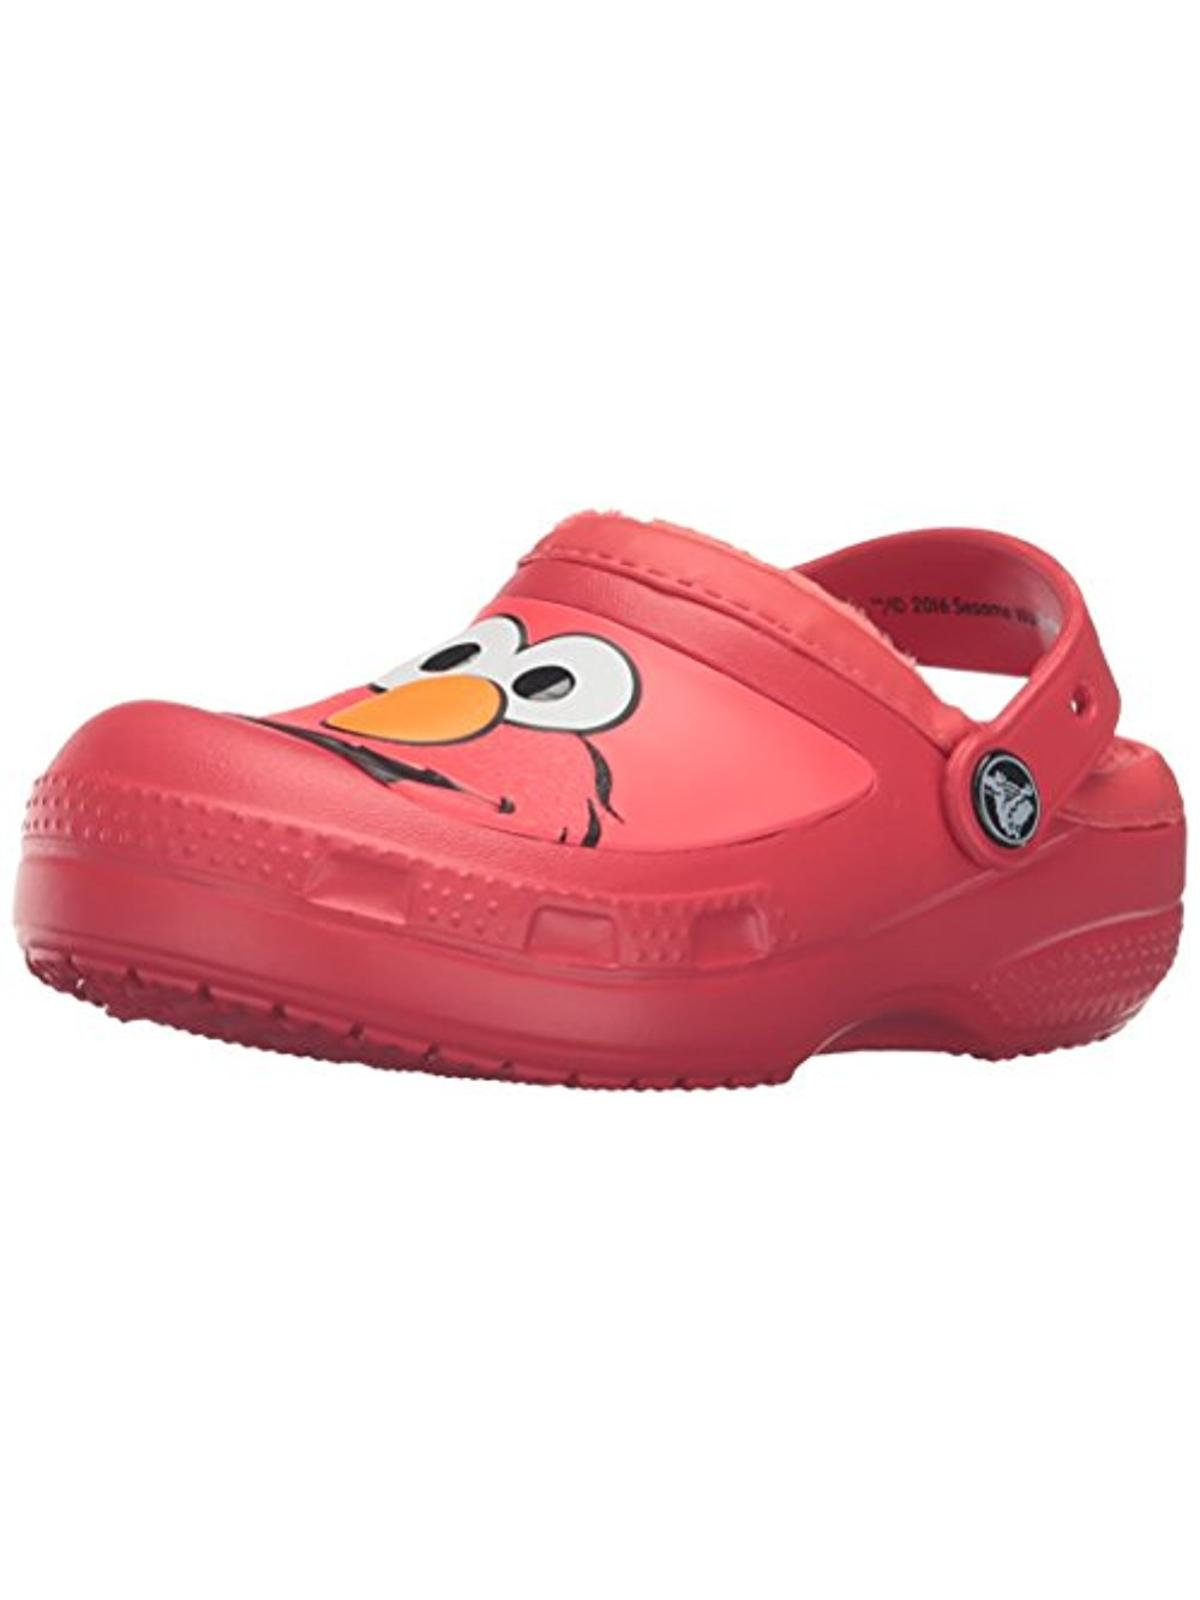 Crocs Boys Elmo Little Kid Faux Fur Clogs by Crocs